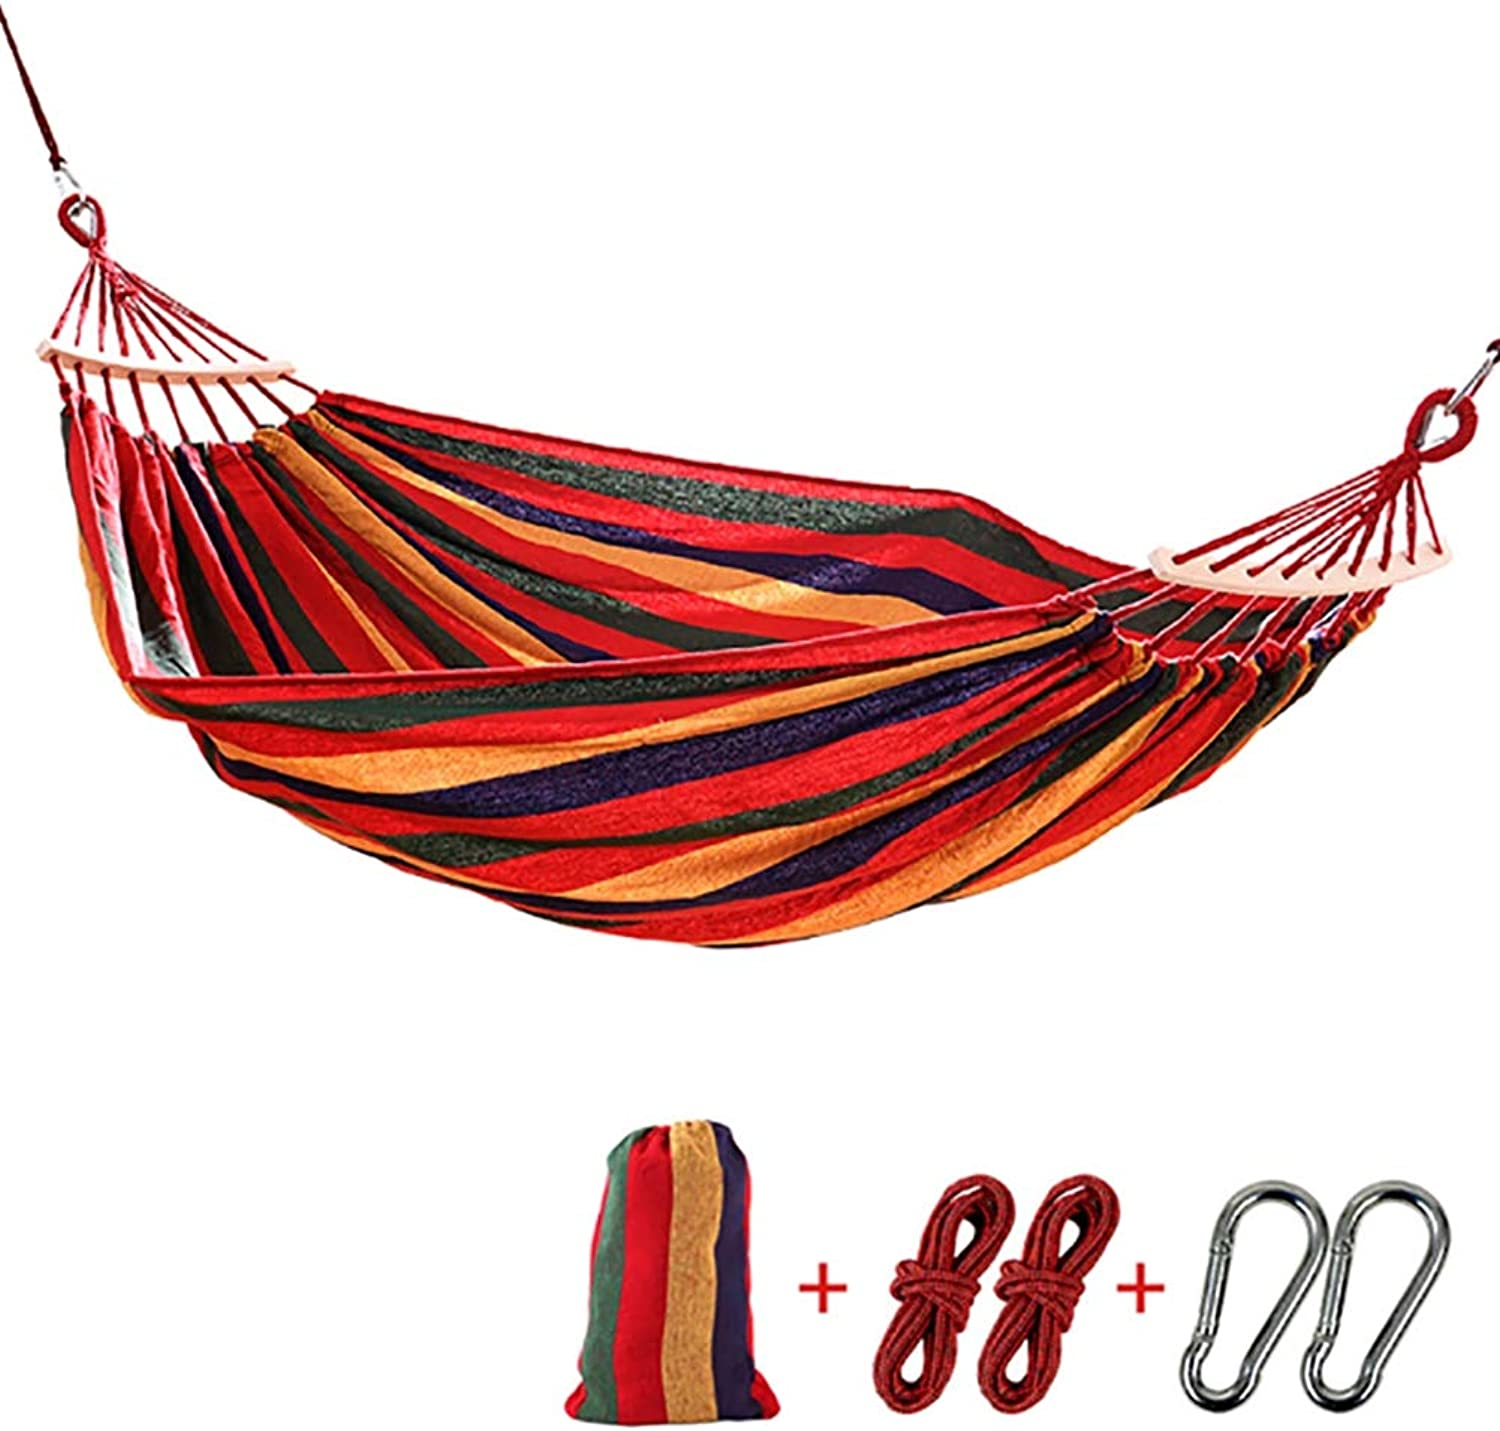 Outdoor Hanging Sheets Double Leisure Canvas Hammock Camping Stick Swing